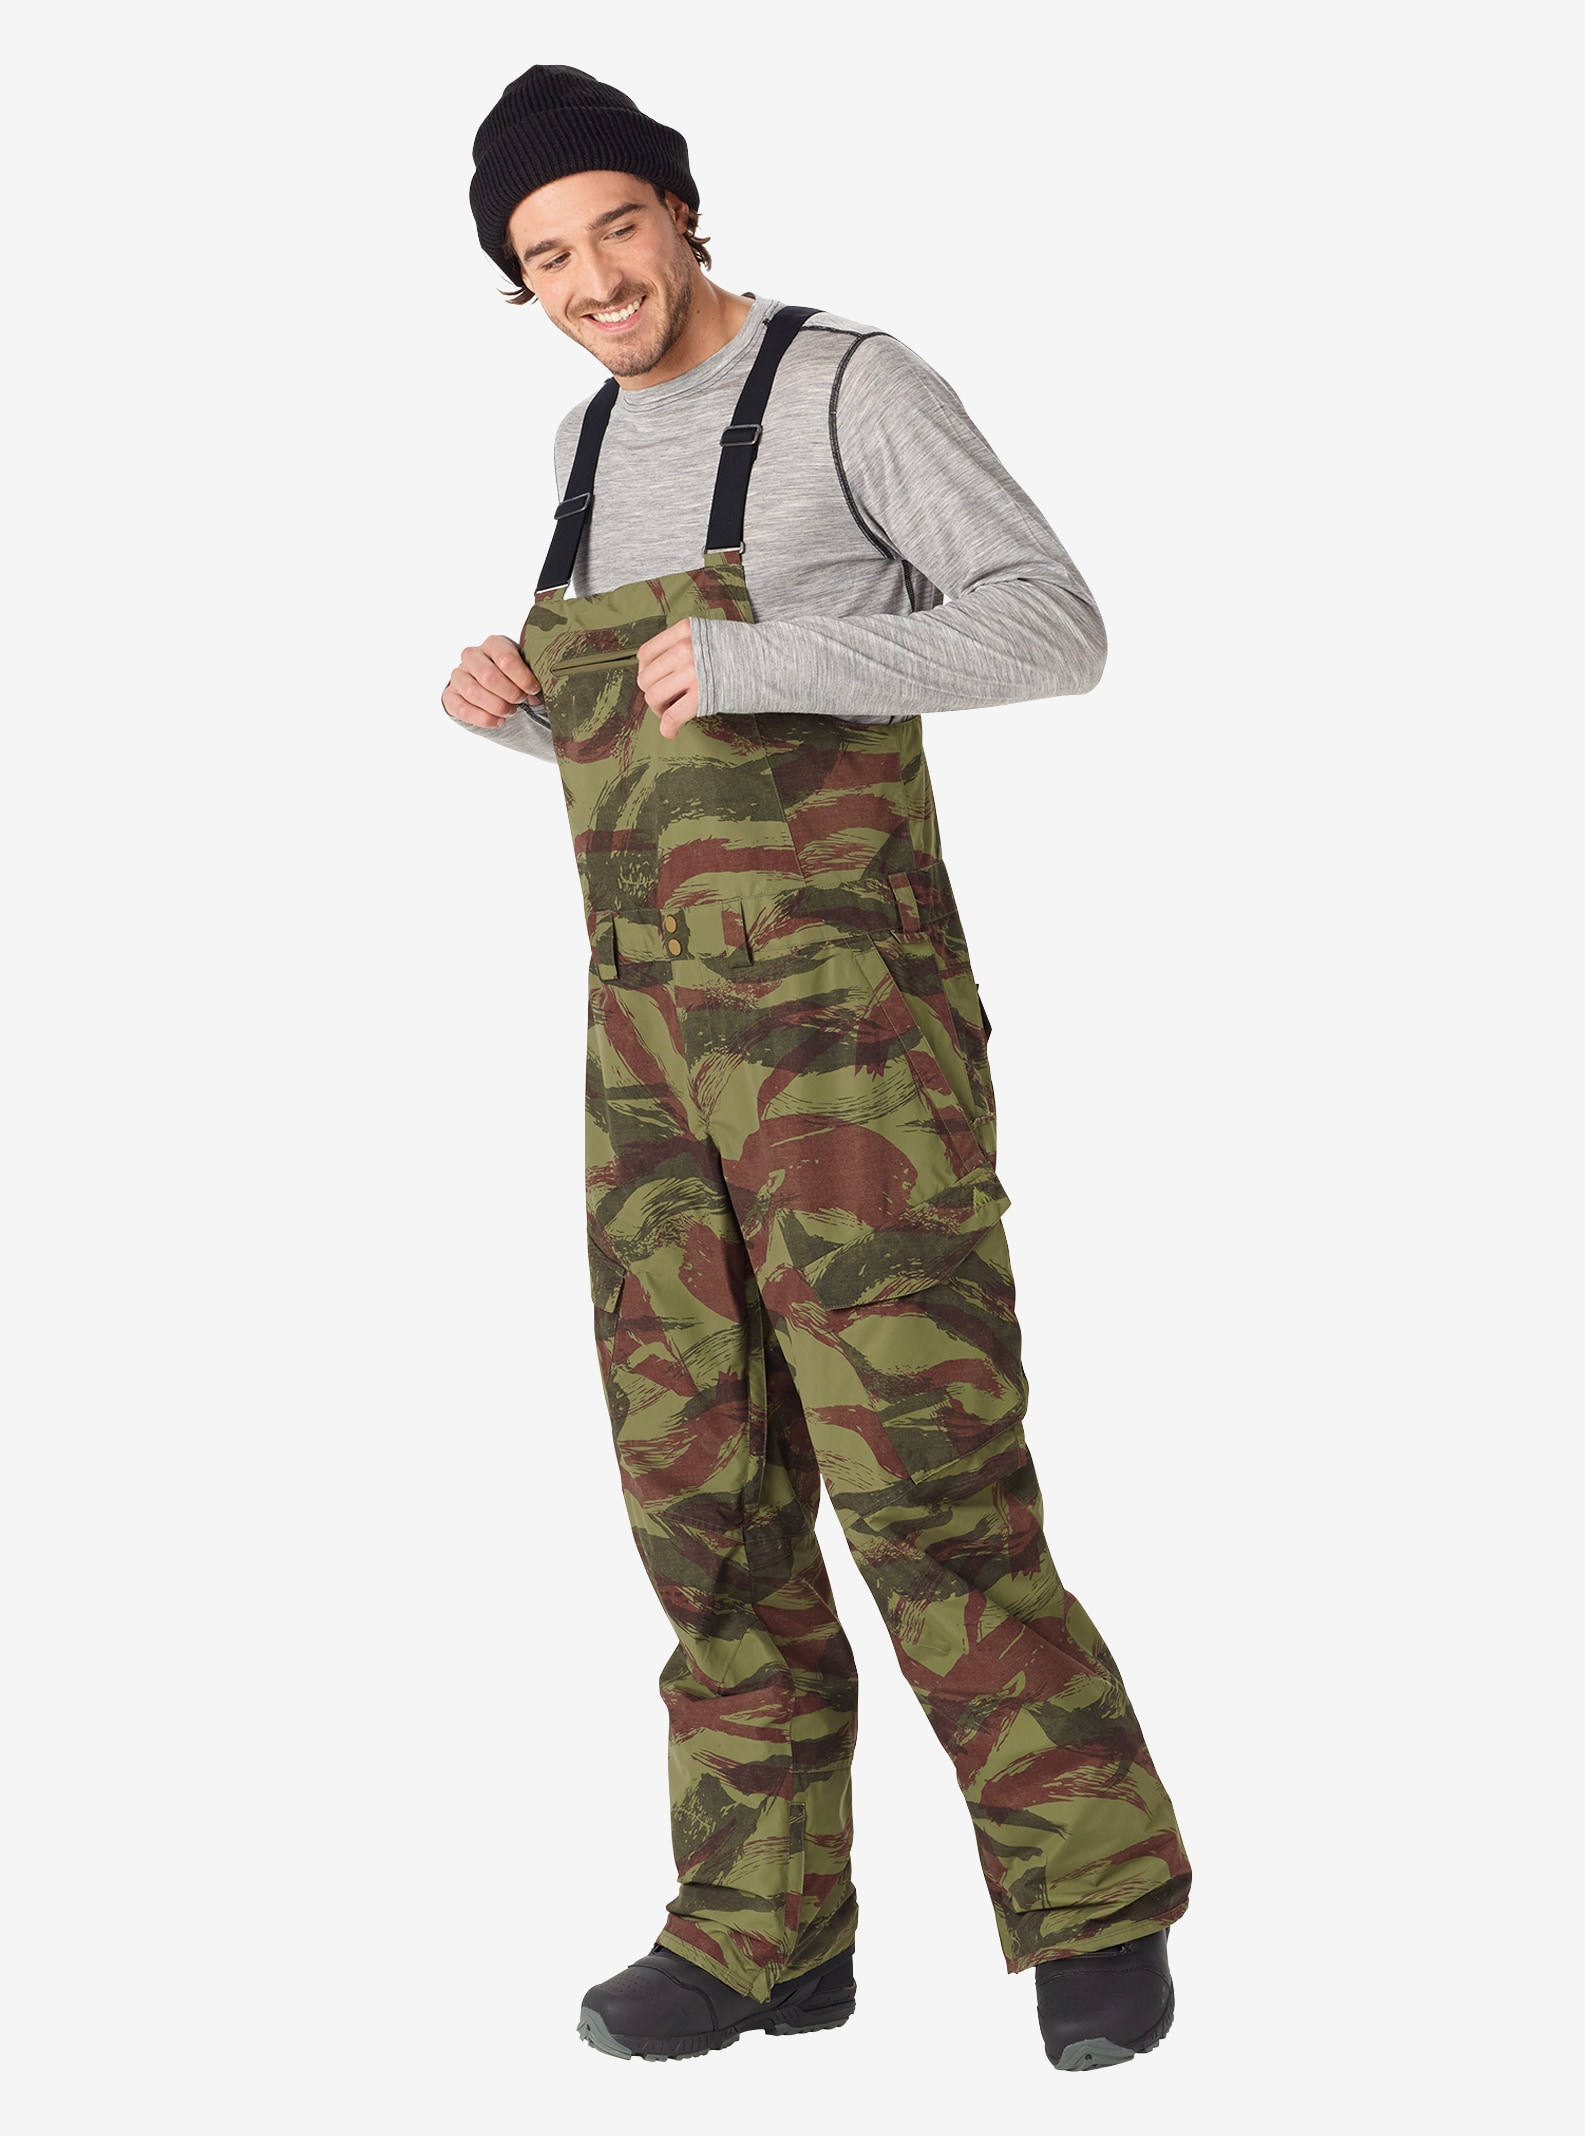 Men's Burton Reserve Bib Pant shown in Brush Camo